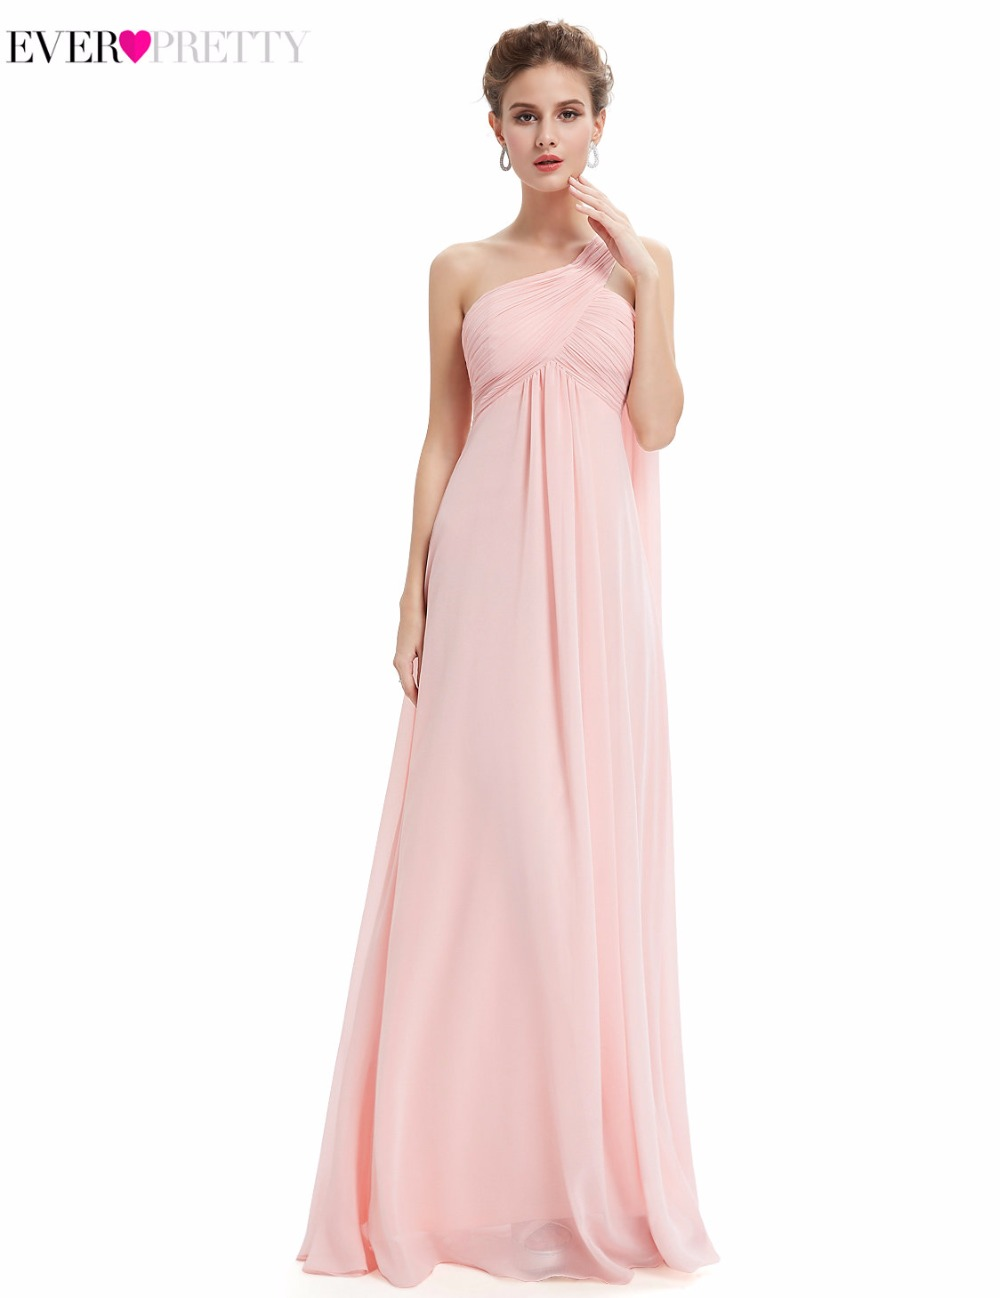 dresses for over 50 wedding guests photo - 1